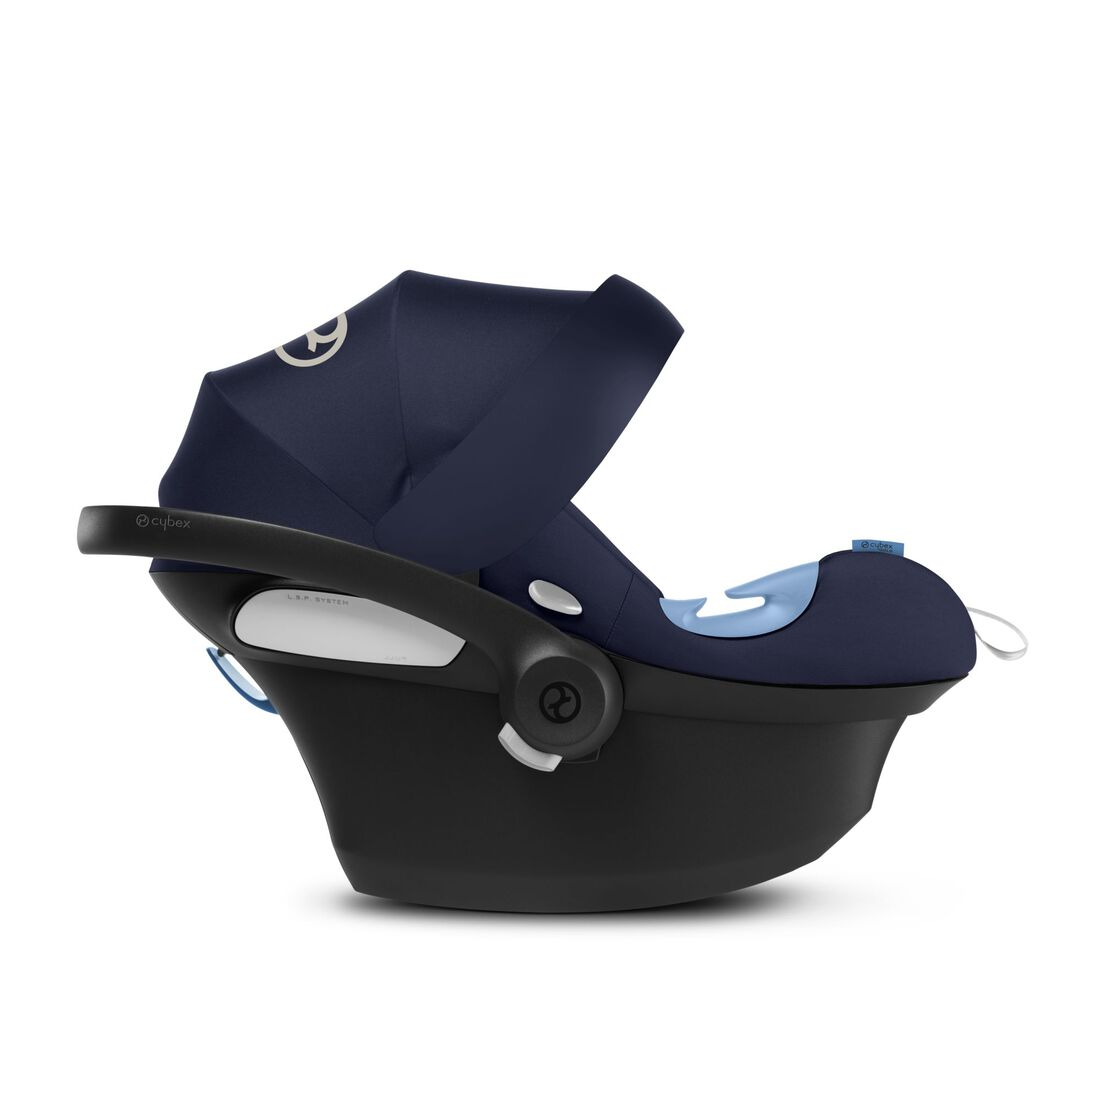 CYBEX Aton M i-Size - Navy Blue in Navy Blue large image number 6